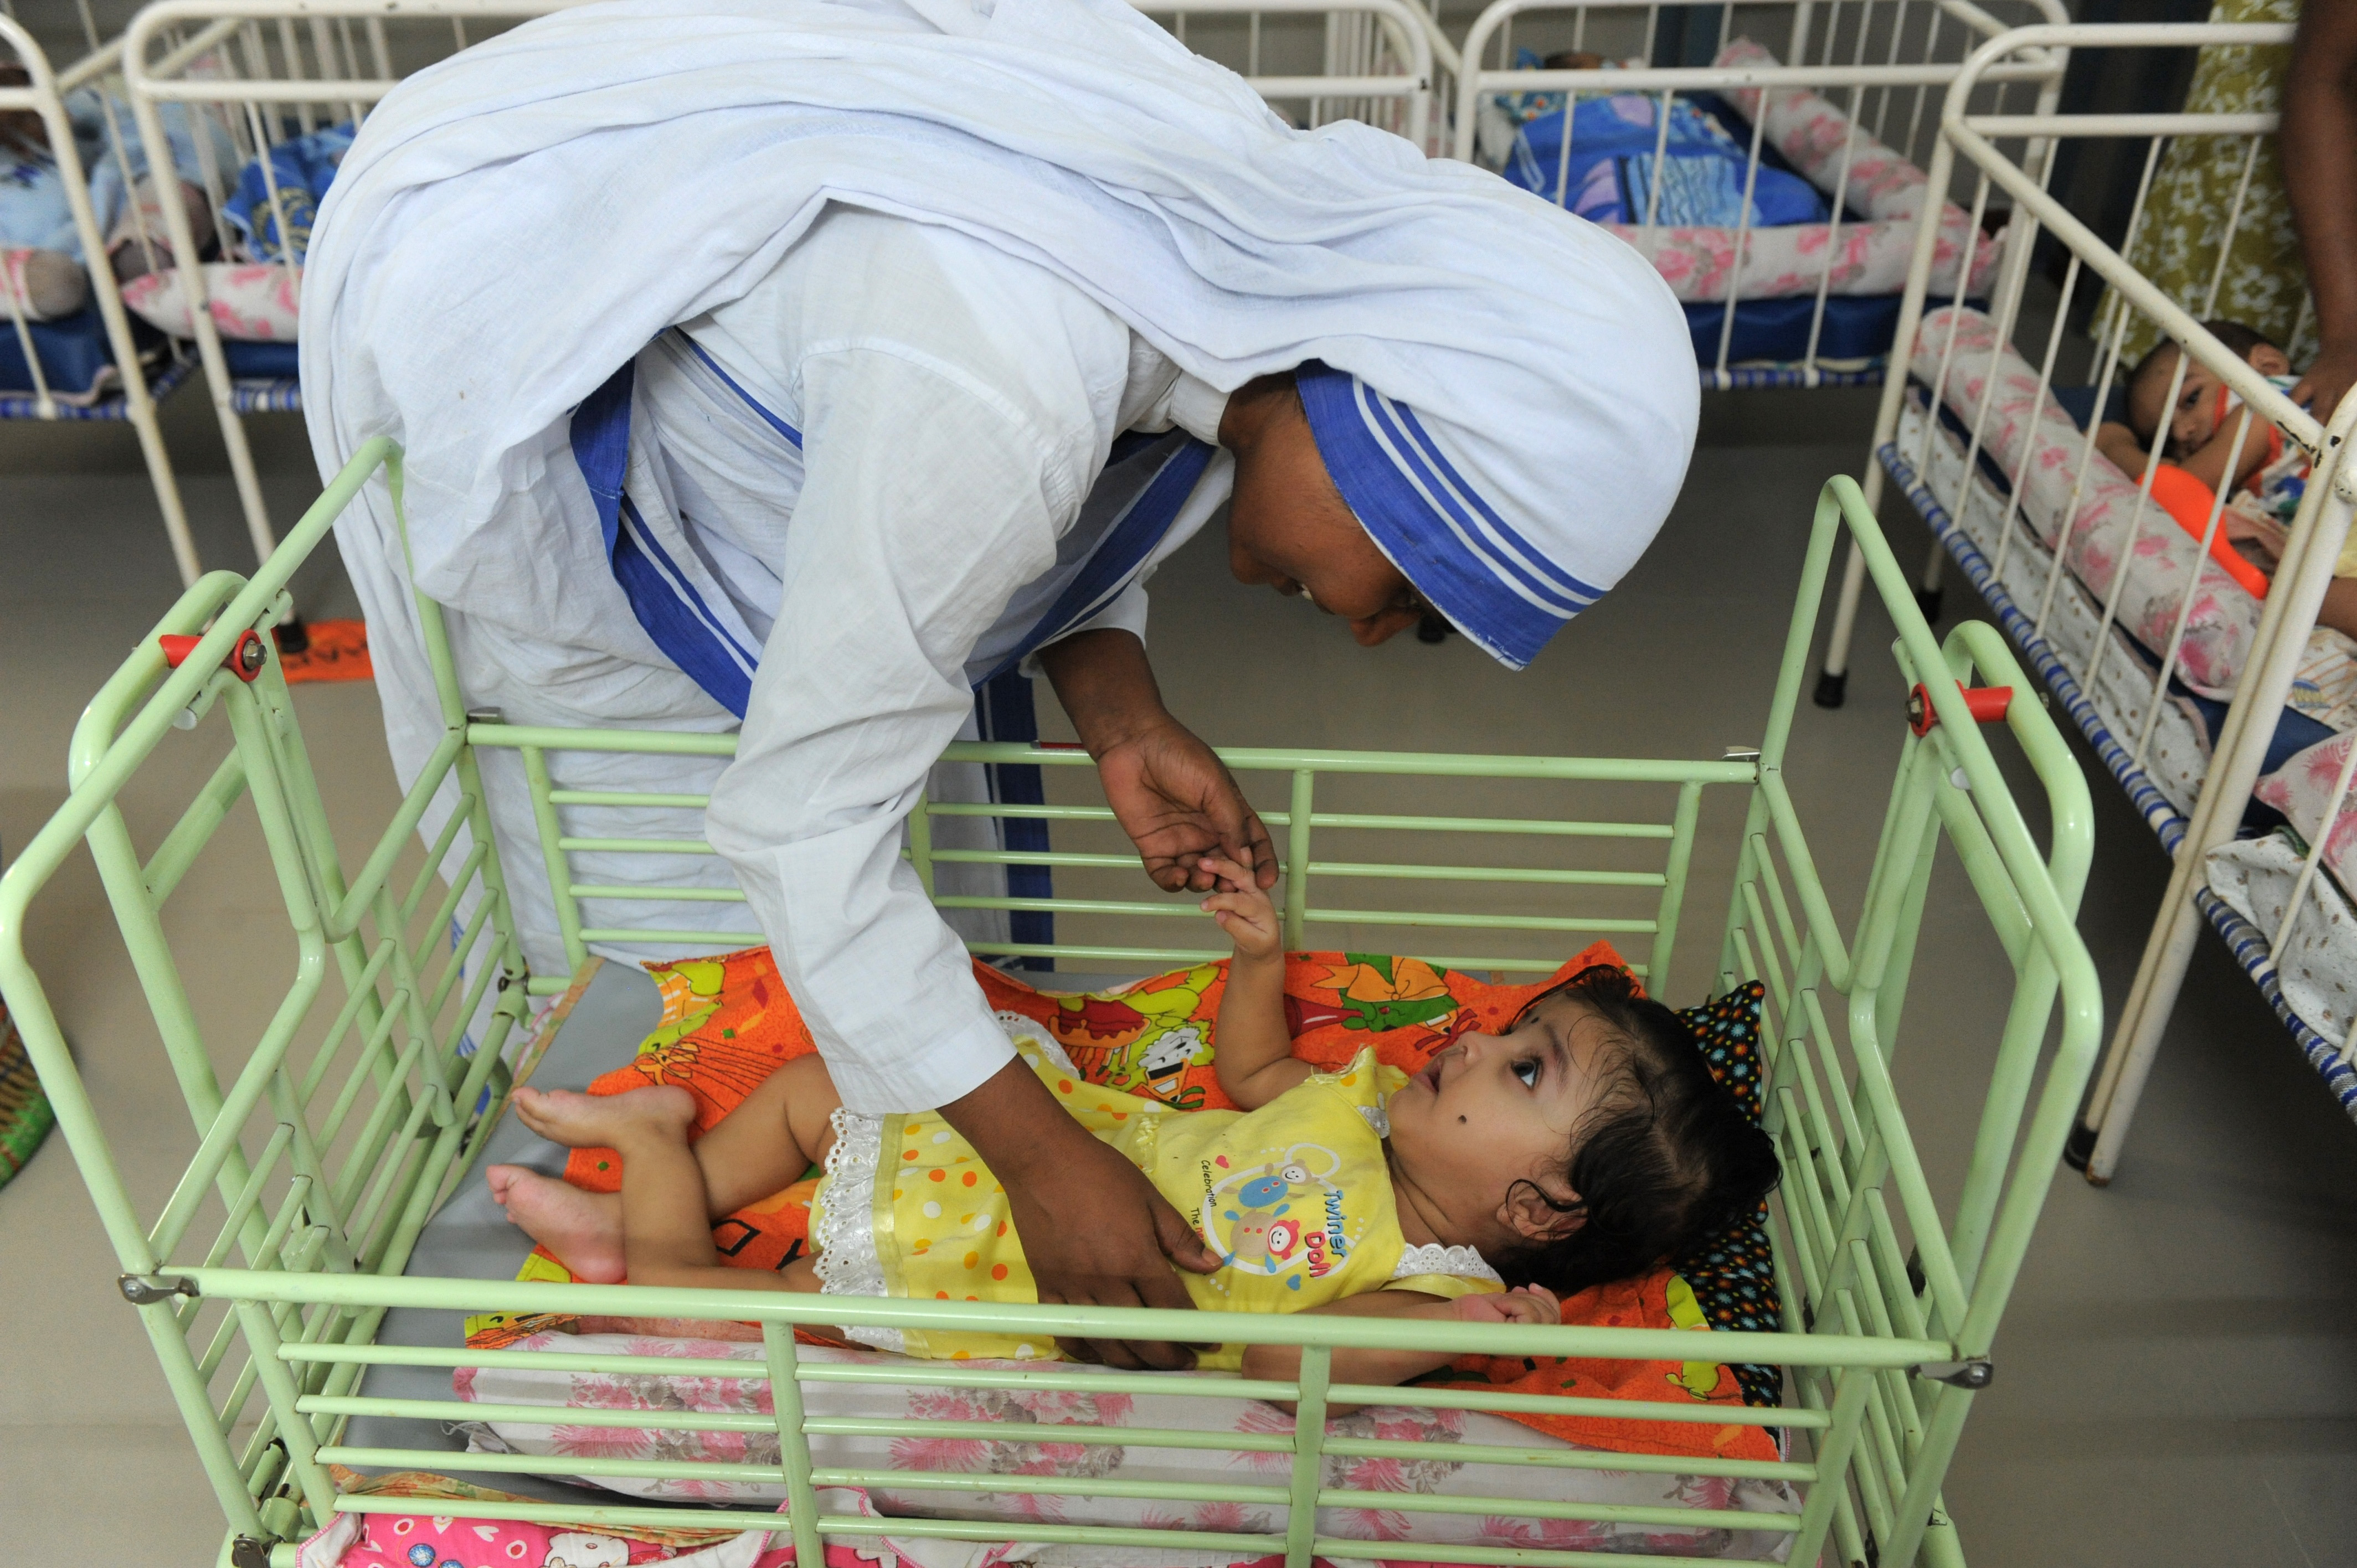 A Christian nun plays with an orphan at Shishu Bhavan, orphanage for discarded babies run by The Missionaries of Charity in Ahmedabad, India, on Sept. 4, 2013.